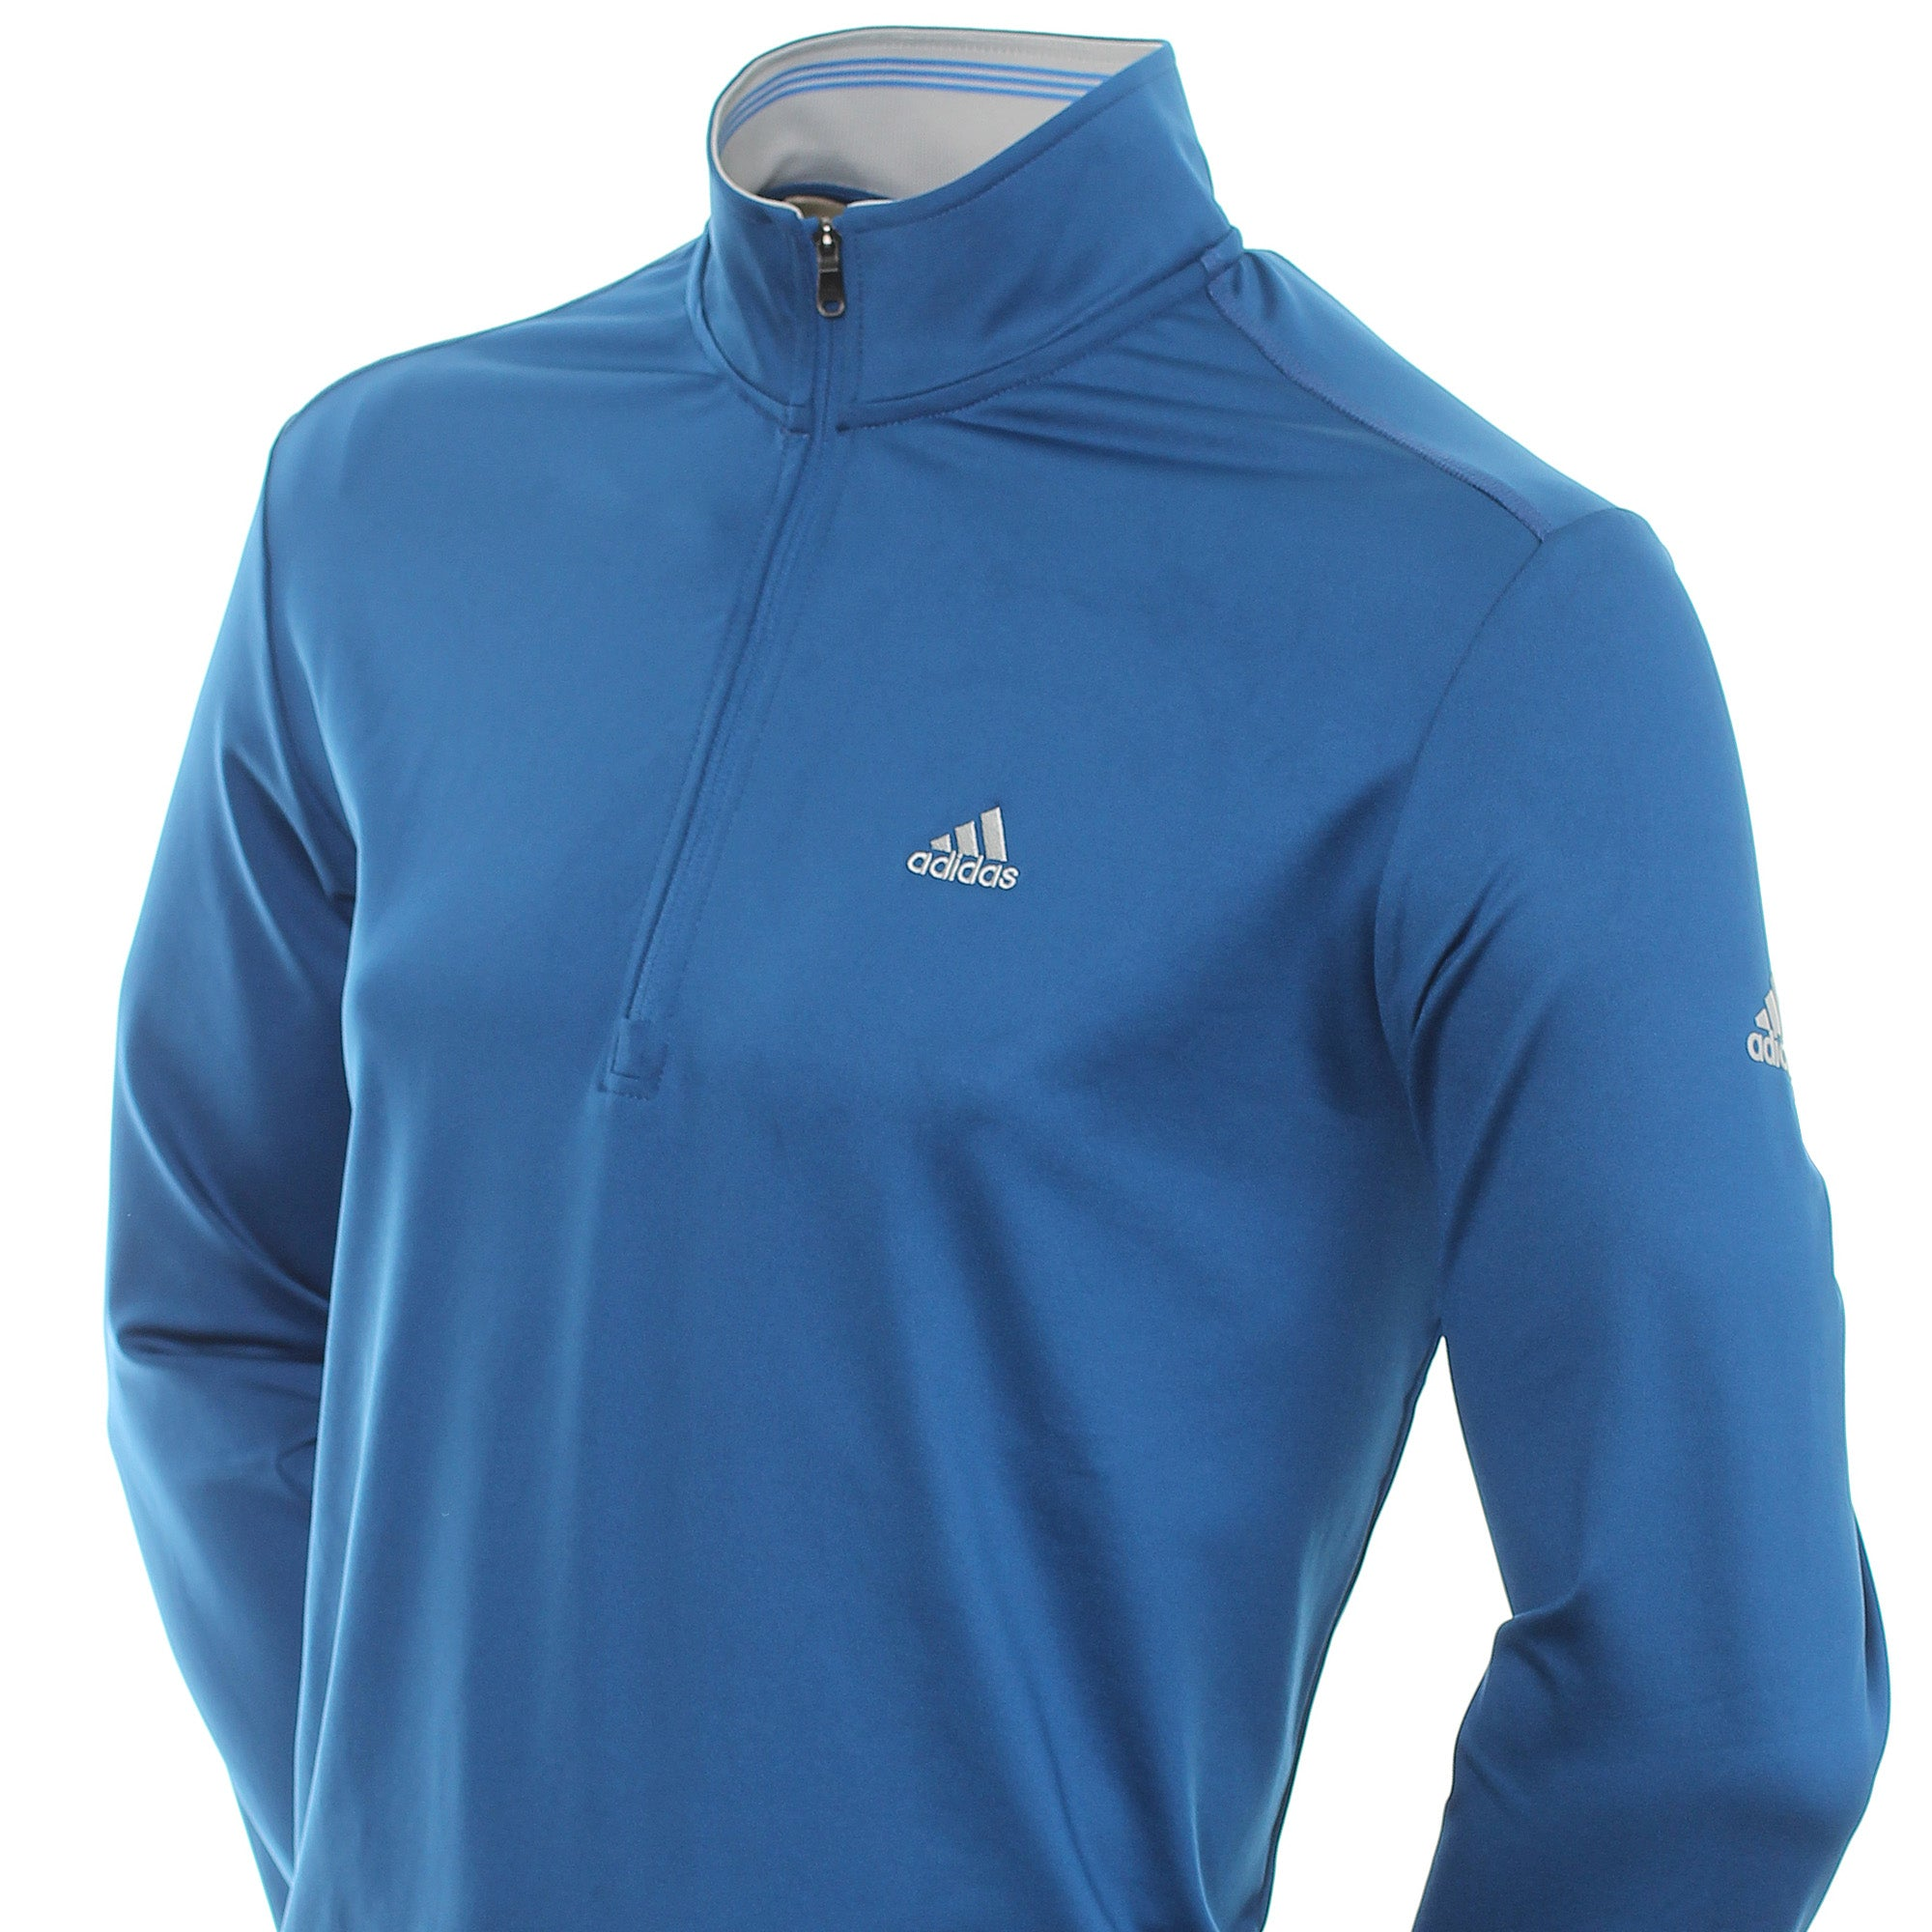 adidas Golf Classic Club LC Zip Sweater DQ2281